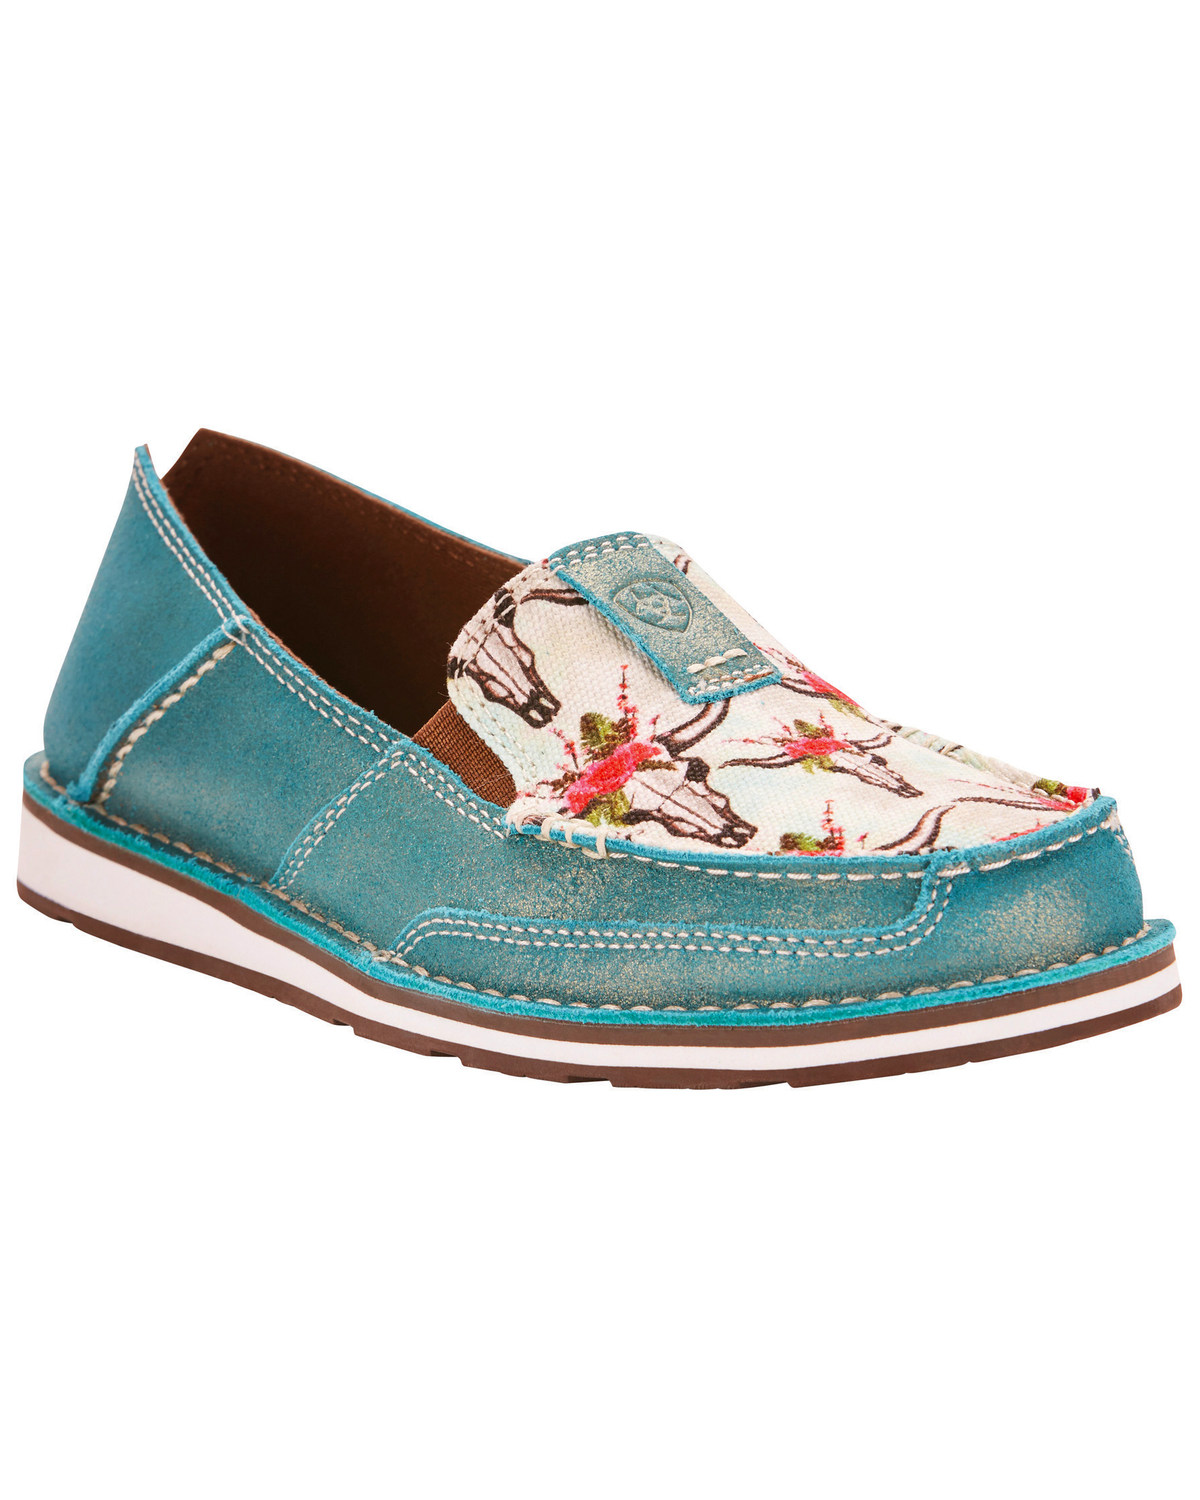 Ariat Women's Turquoise Cruiser Shoes